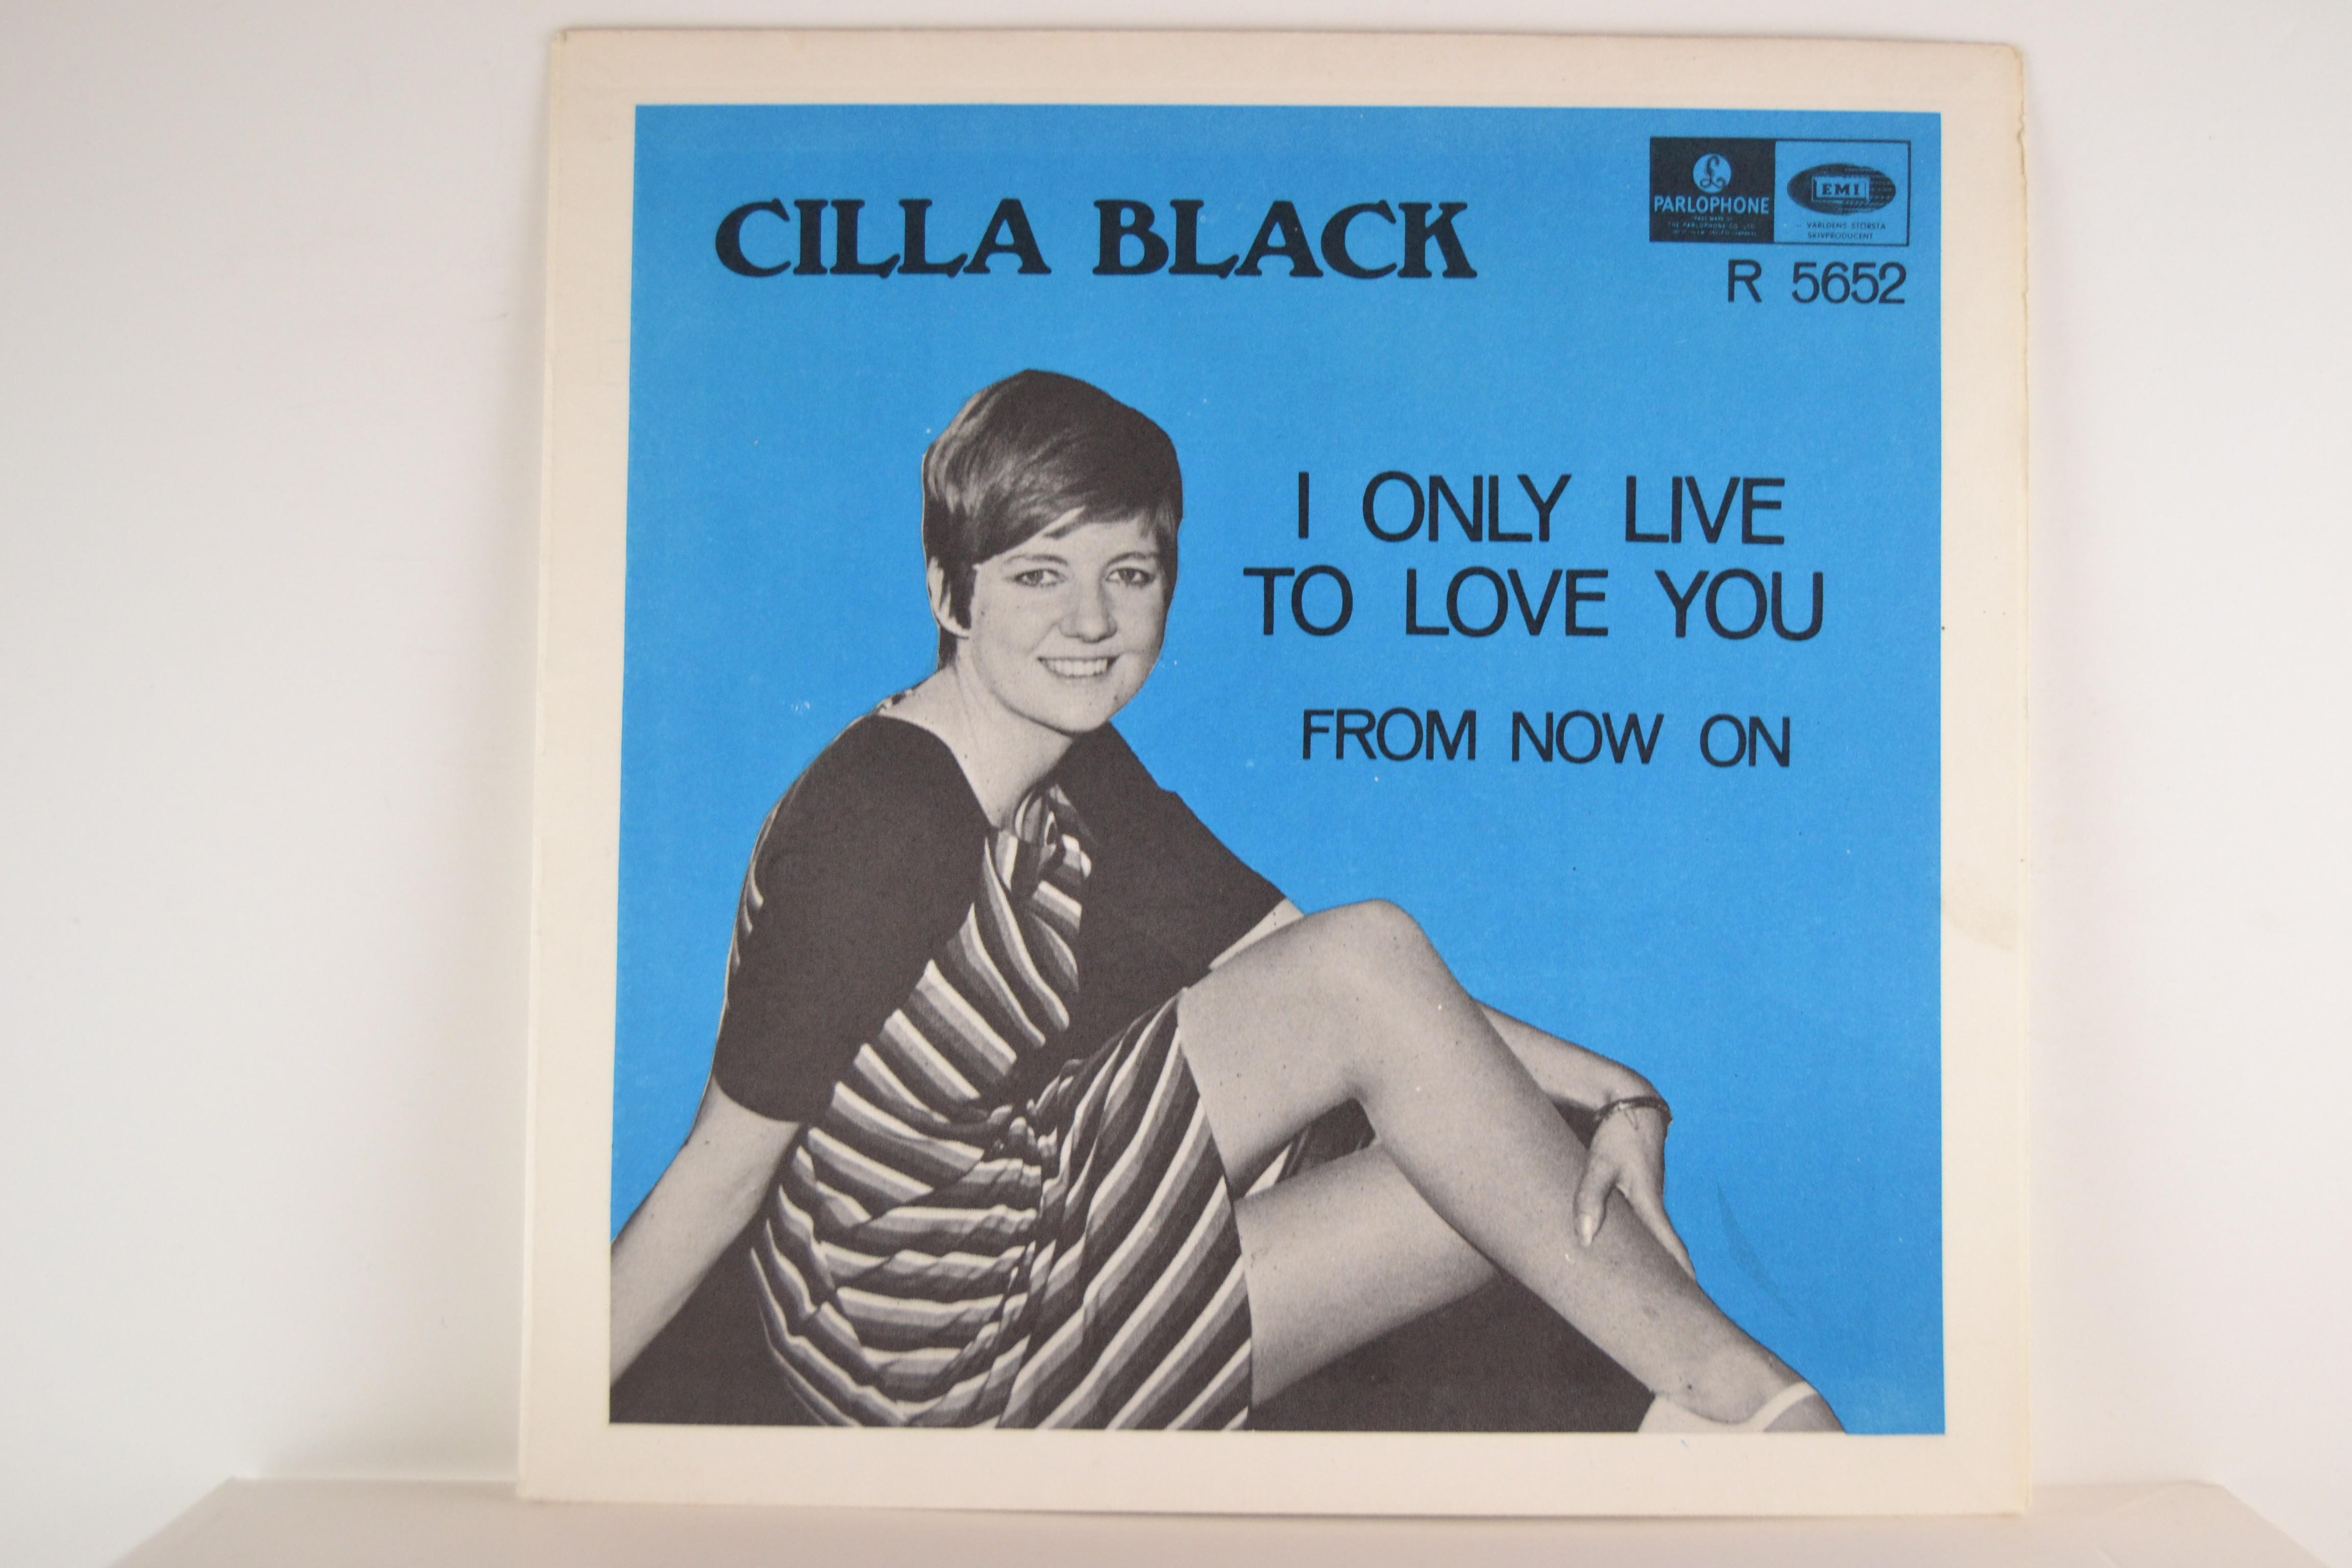 CILLA BLACK : I only live to love you / From now on